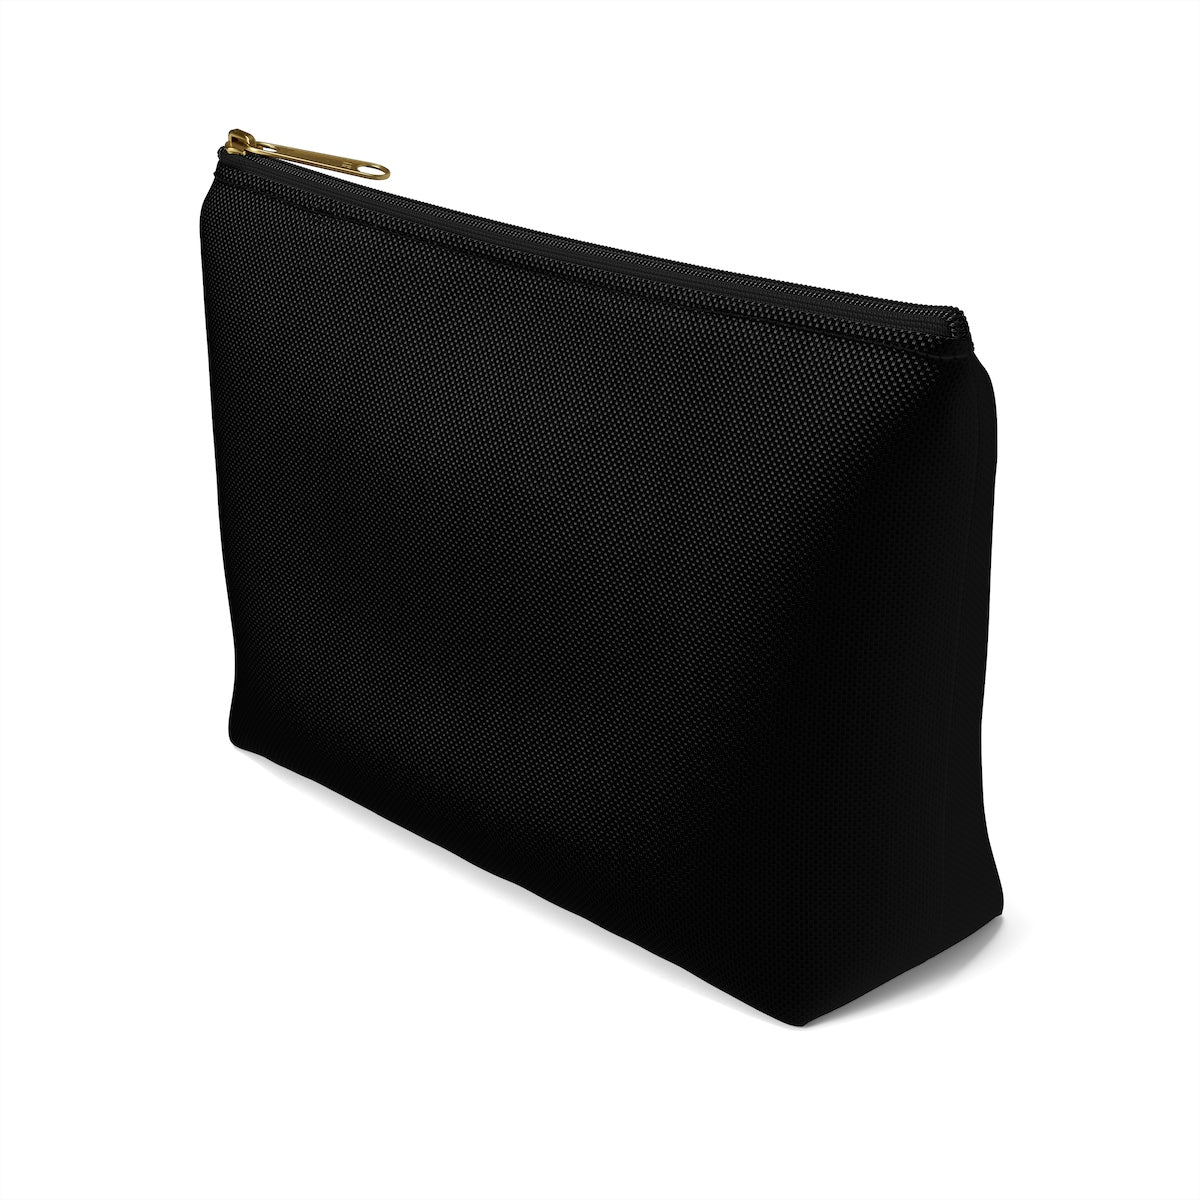 Magical Black Introvert Black Bag Accessory Pouch w T-bottom